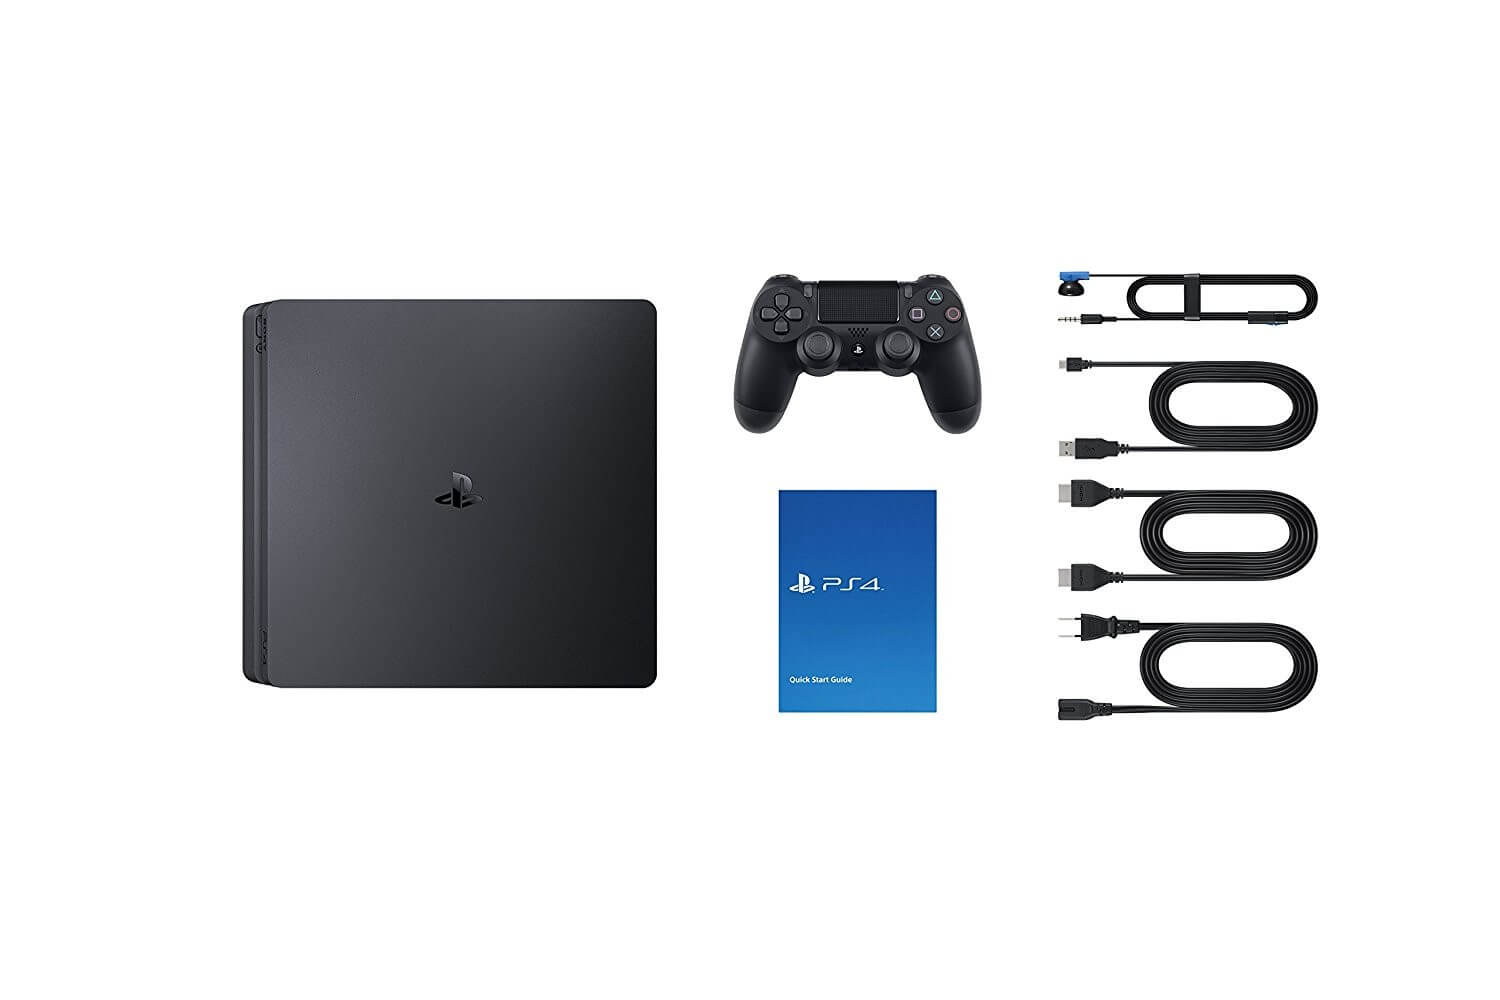 Žaidimų konsolė SONY PlayStation 4 (PS4) Slim 500GB (juoda) (Spider-Man, Horizon Zero Dawn CE, Ratchet and Clank